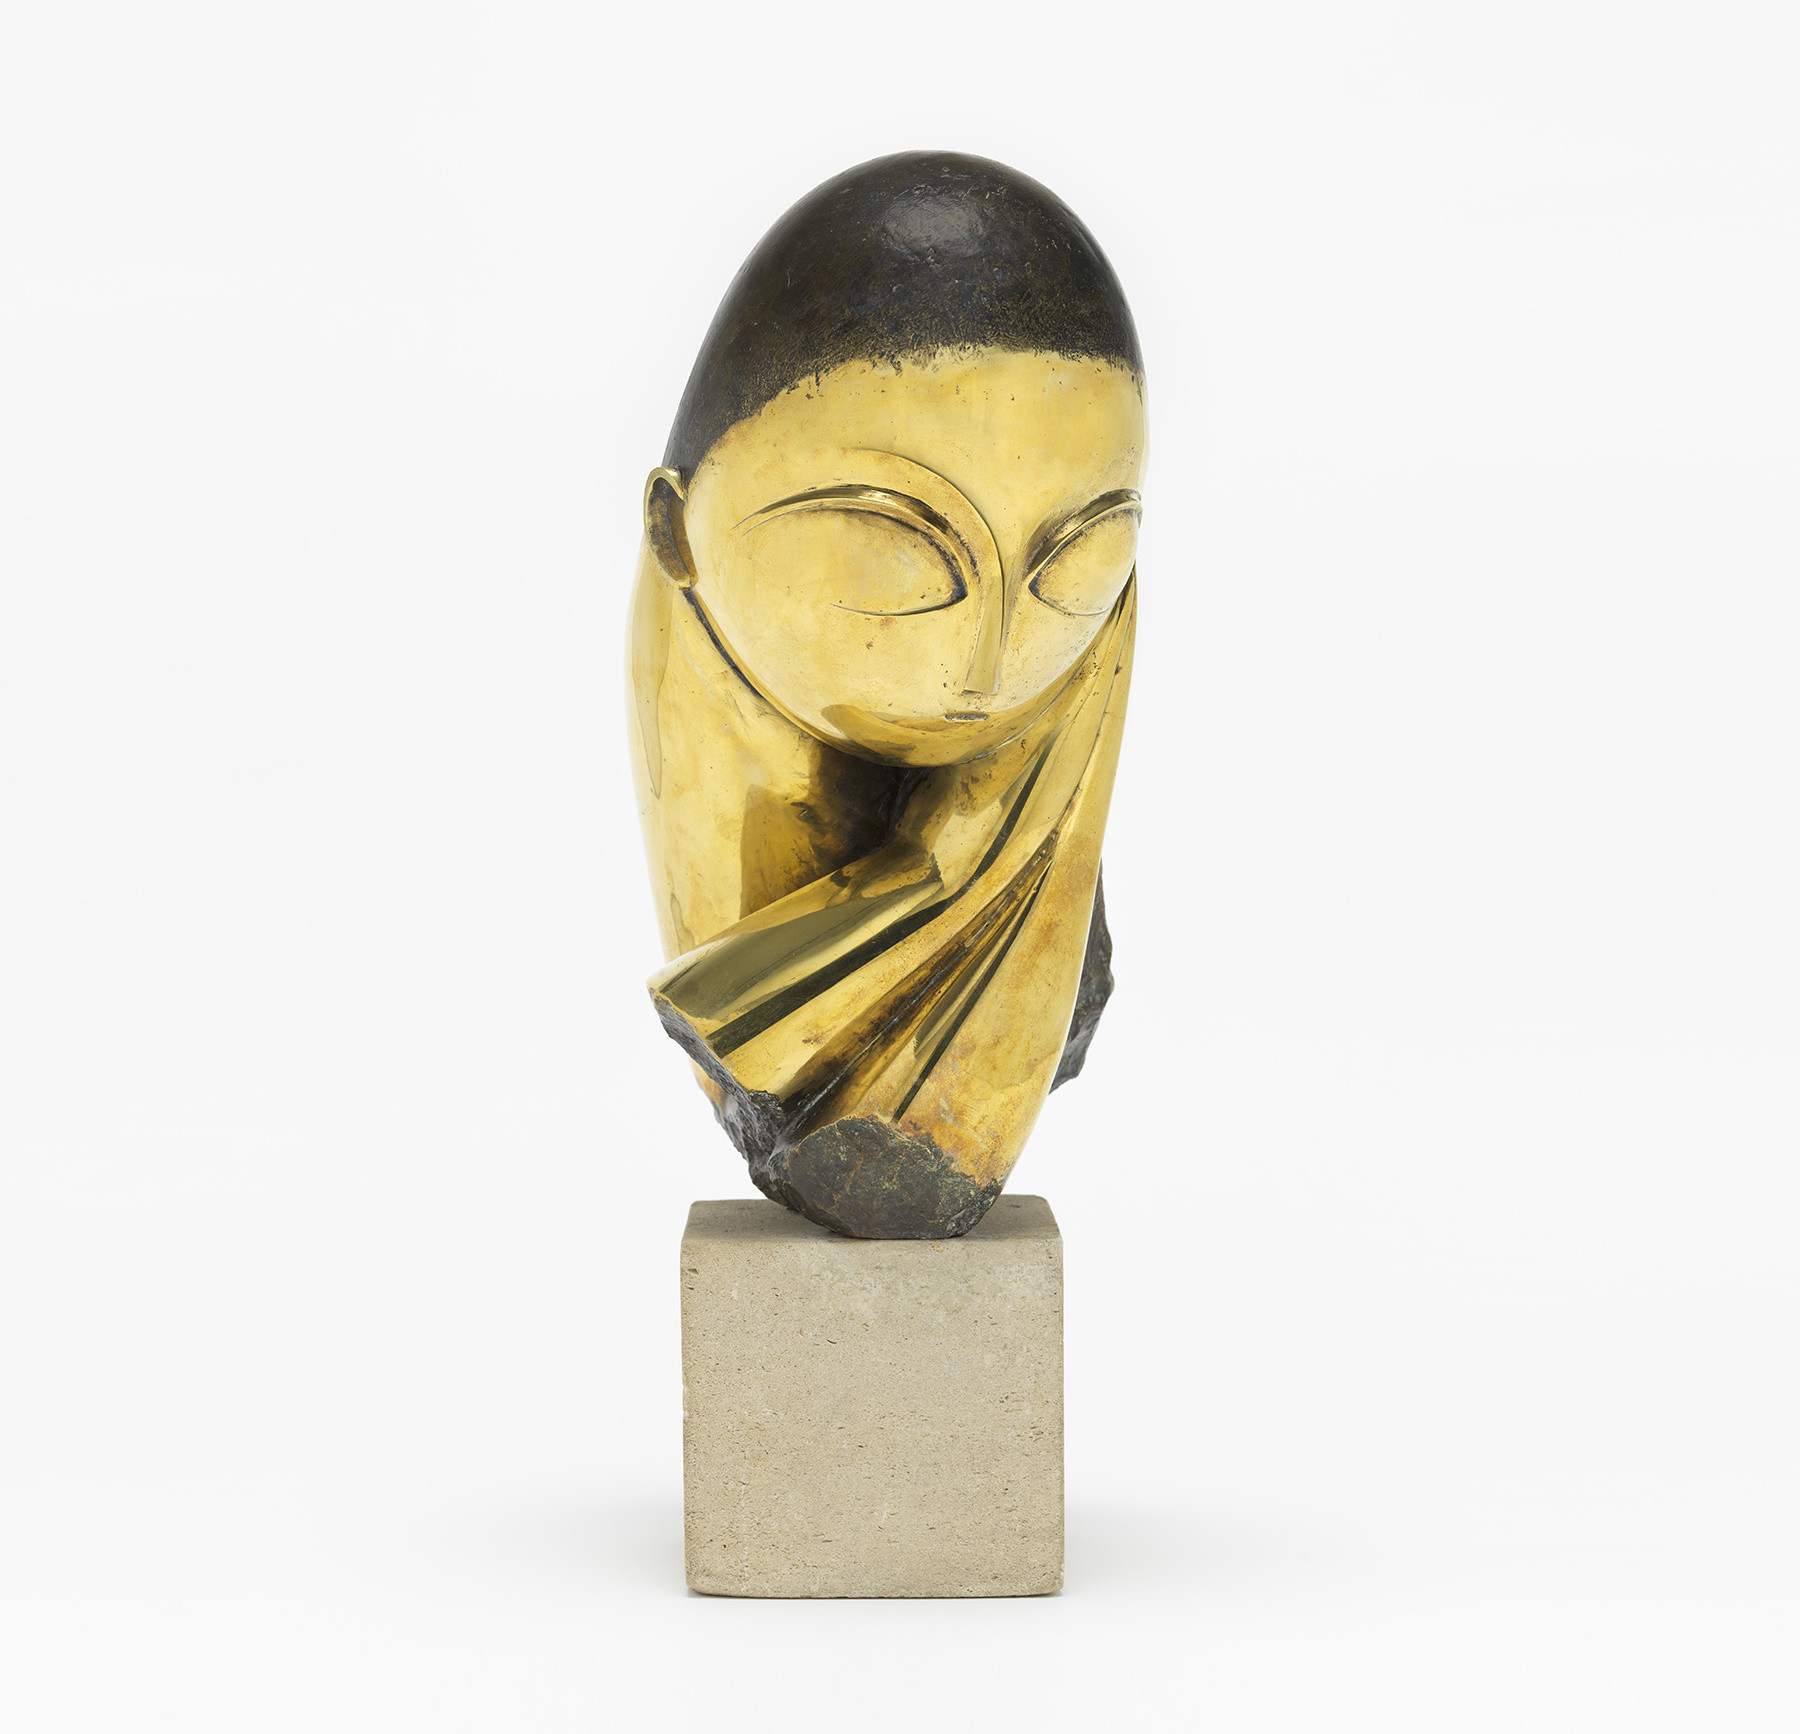 "Constantin Brancusi. Mlle Pogany. Version I, 1913 (after a marble of 1912). Bronze with black patina, 17 1/4 x 8 1/2 x 12 1/2"" (43.8 x 21.5 x 31.7 cm), on limestone base, 5 3/4 x 6 1/8 x 7 3/8"" (14.6 x 15.6 x 18.7 cm). Acquired through the Lillie P. Bliss Bequest (by exchange). © 2018 Artists Rights Society (ARS), New York/ADAGP, Paris"